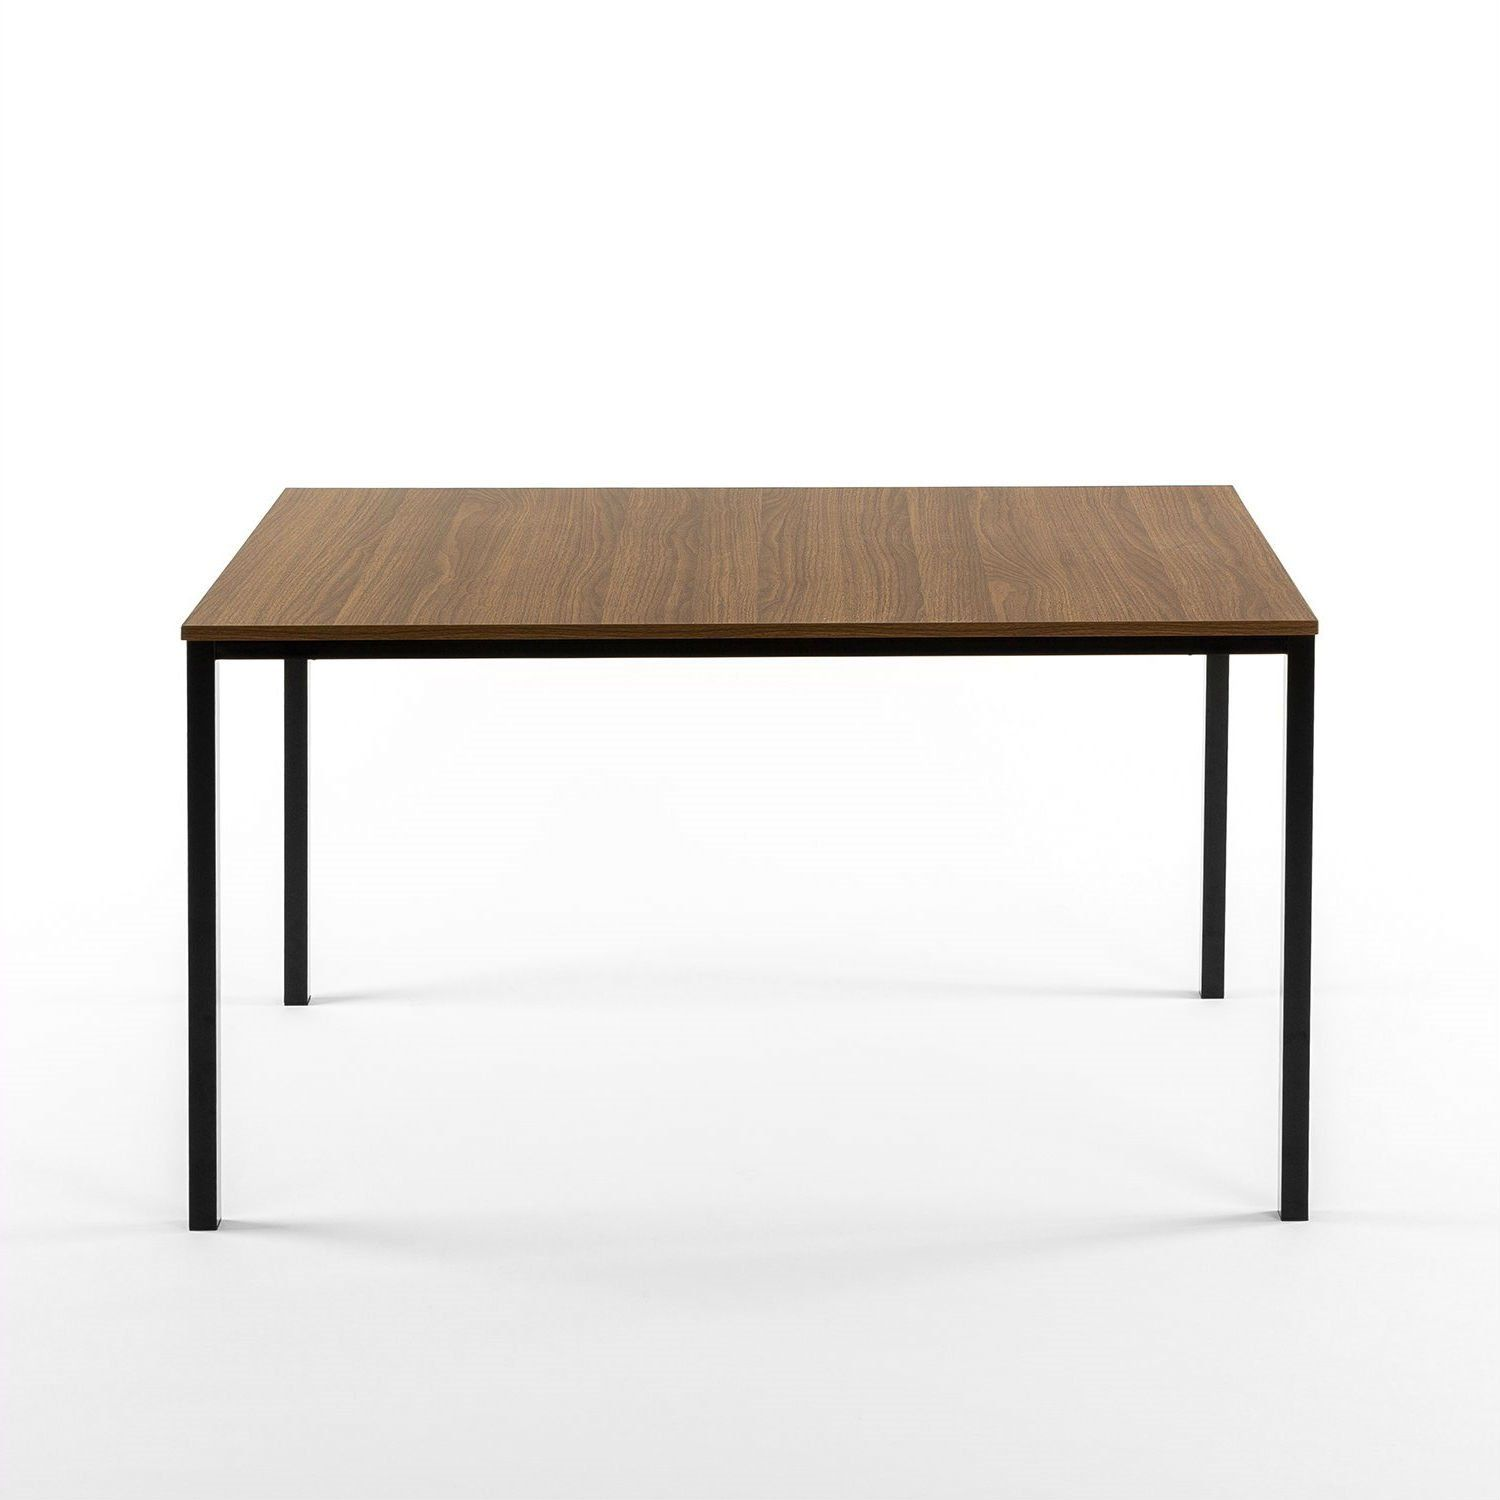 Modern 48 X 30 Inch Steel Frame Dining Table With Wood Grain Top In 2021 Dining Table Timeless Dining Table Solid Wood Dining Table